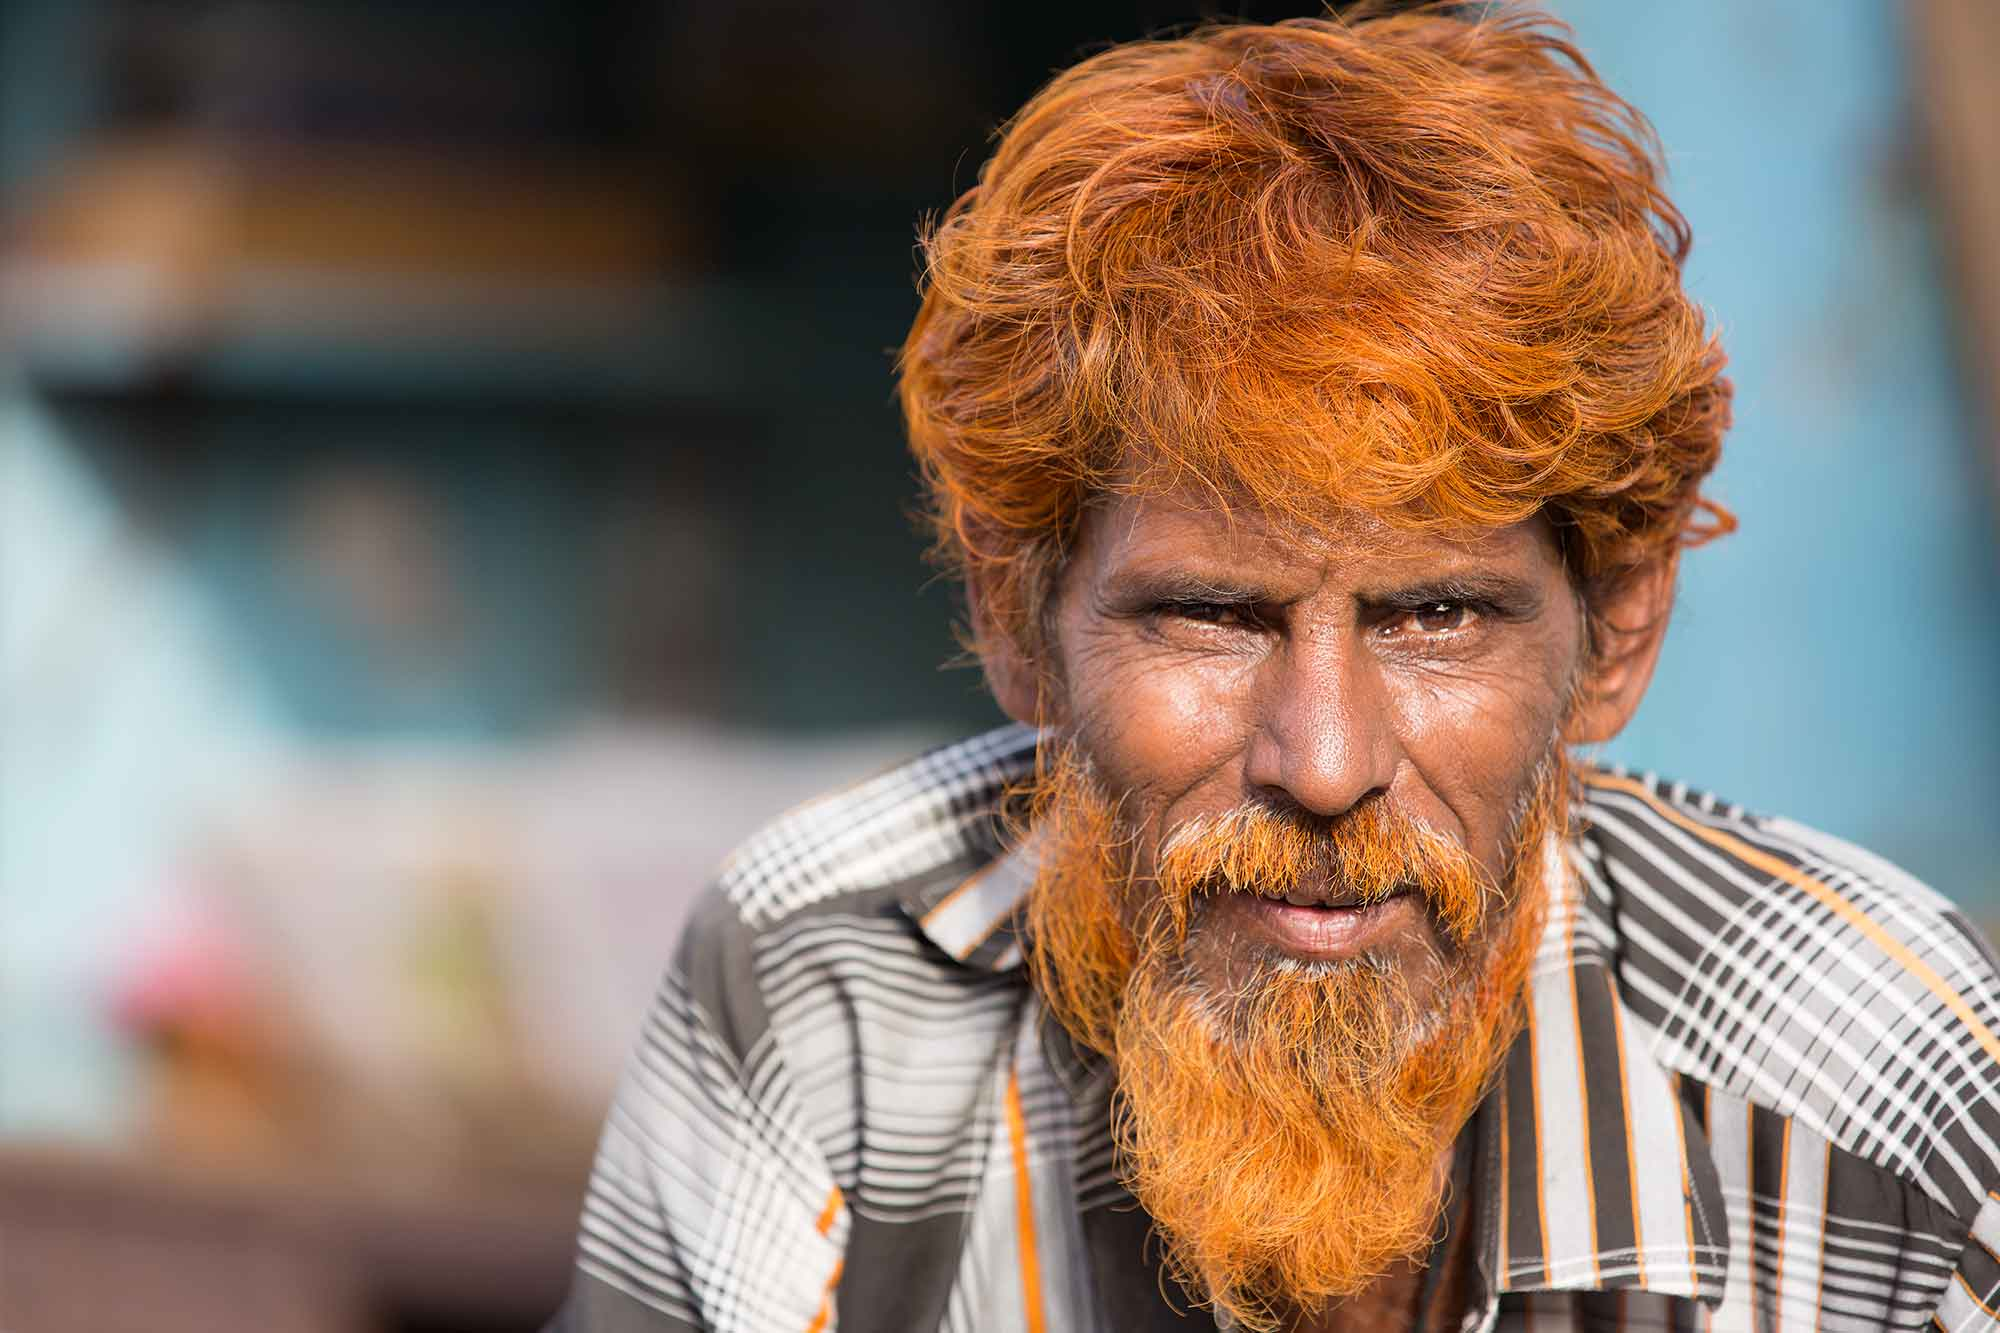 portrait-man-orange-beard-bhuj-gurajat-india